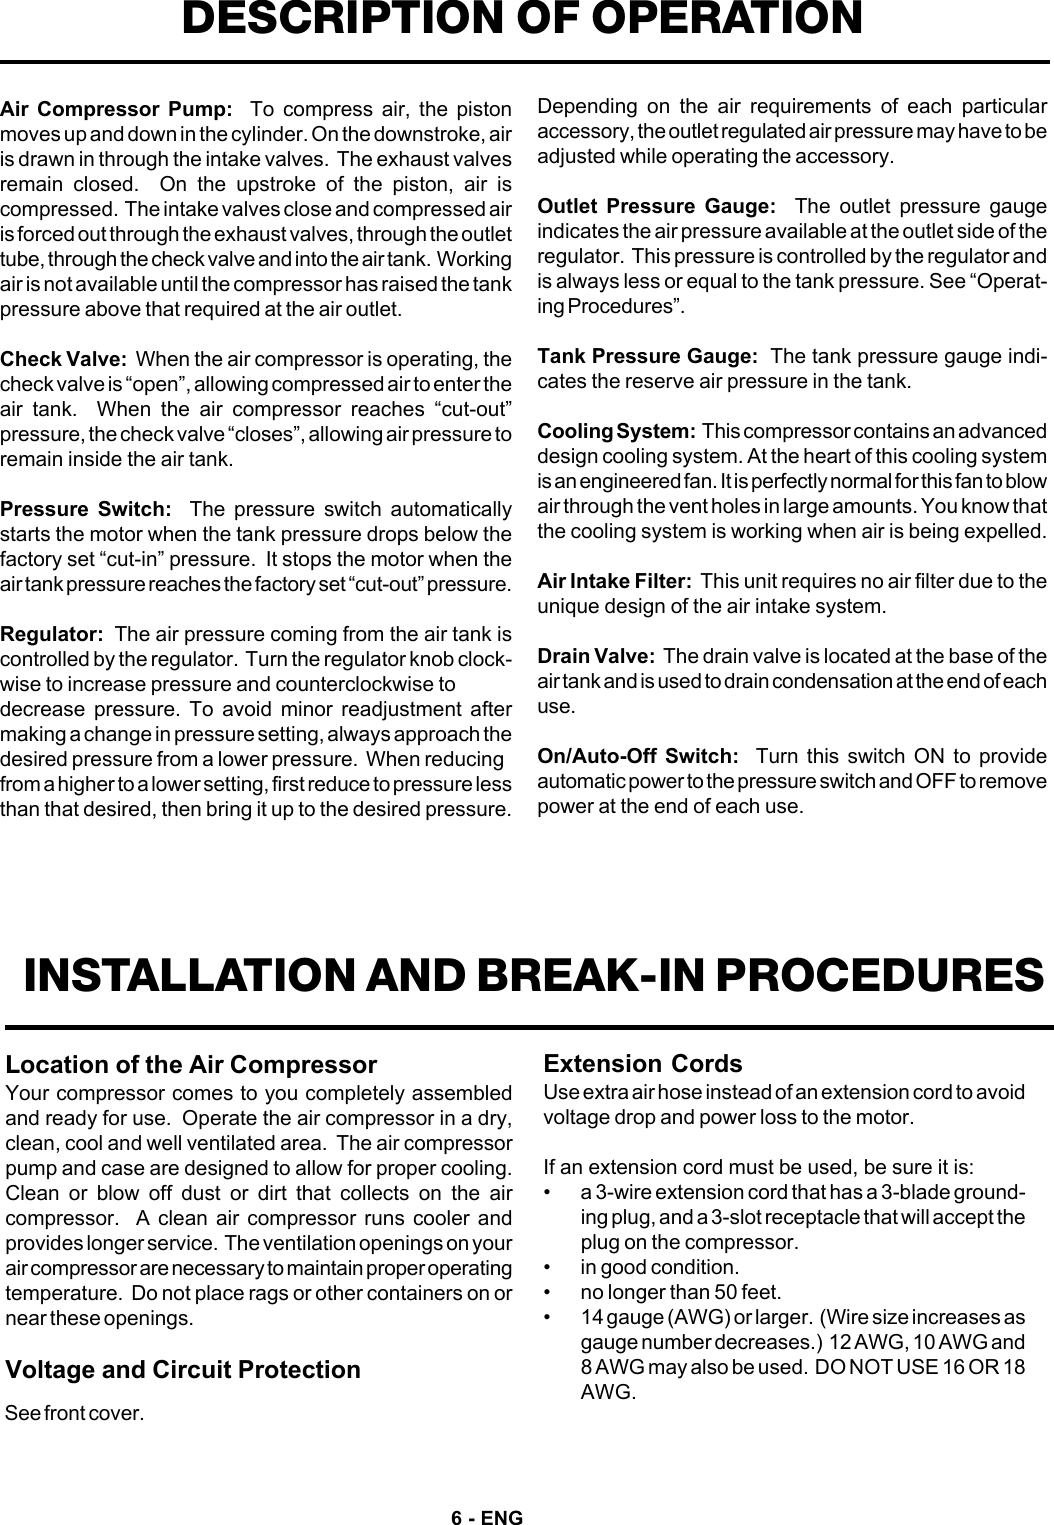 Devilbiss fa125 users manual page 6 of 12 devilbiss devilbiss fa125 users manual devilbiss greentooth Gallery